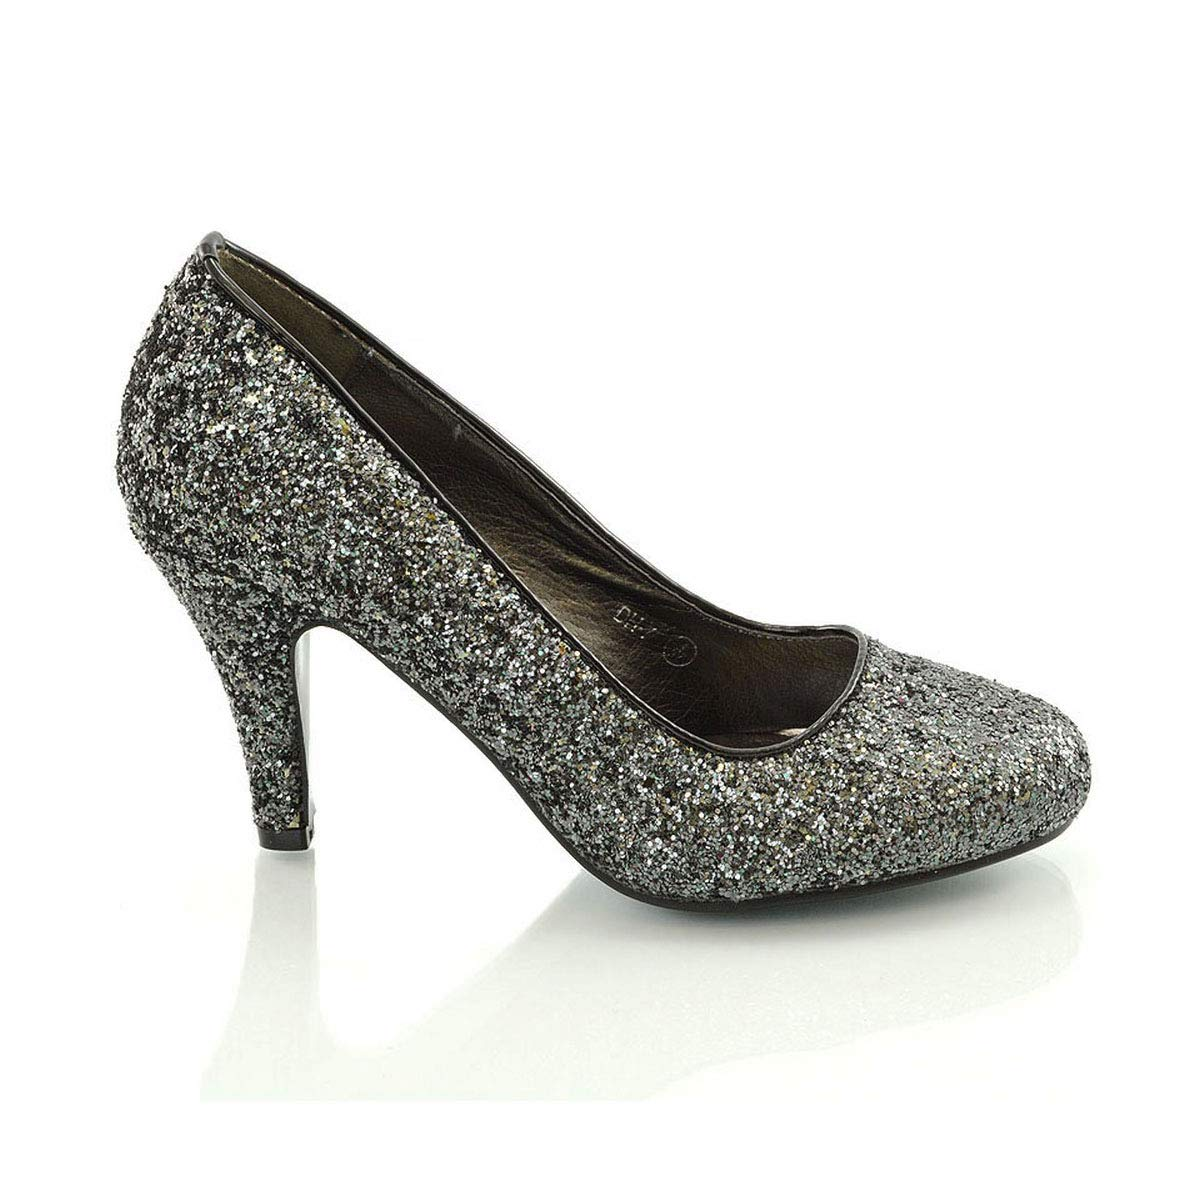 ESSEX GLAM Womens Bridal wedding Low Heel Sparkly Prom Party Court Shoes